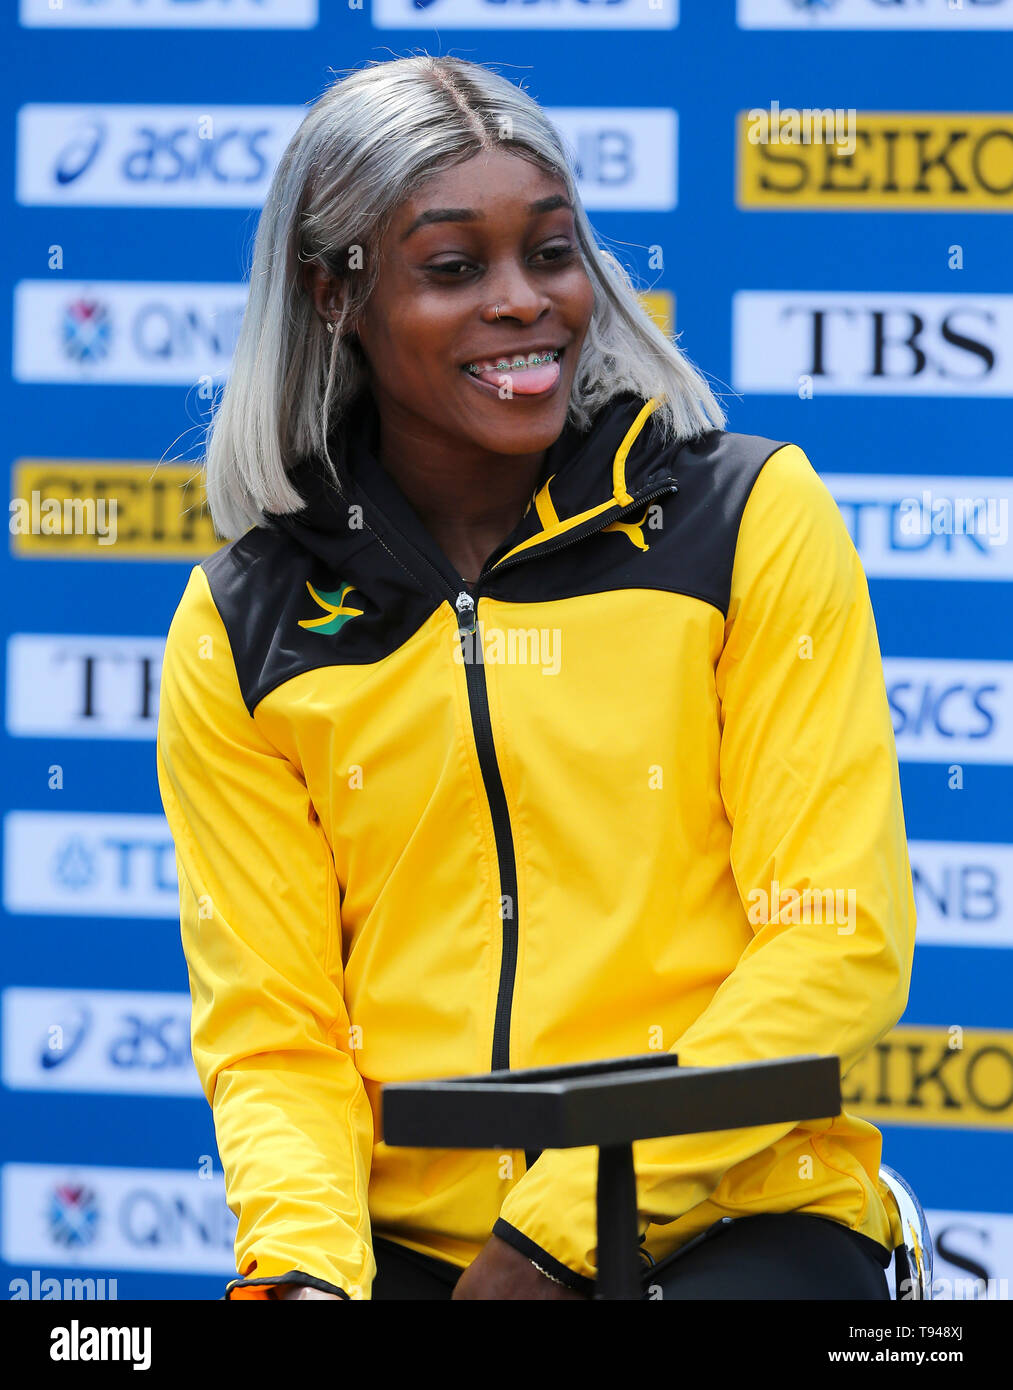 YOKOHAMA, JAPAN - MAY 10: Elaine Thompson of Jamaica during the official press conference of the 2019 IAAF World Relay Championships at the Nissan Stadium on May 10, 2019 in Yokohama, Japan. (Photo by Roger Sedres for the IAAF) Stock Photo